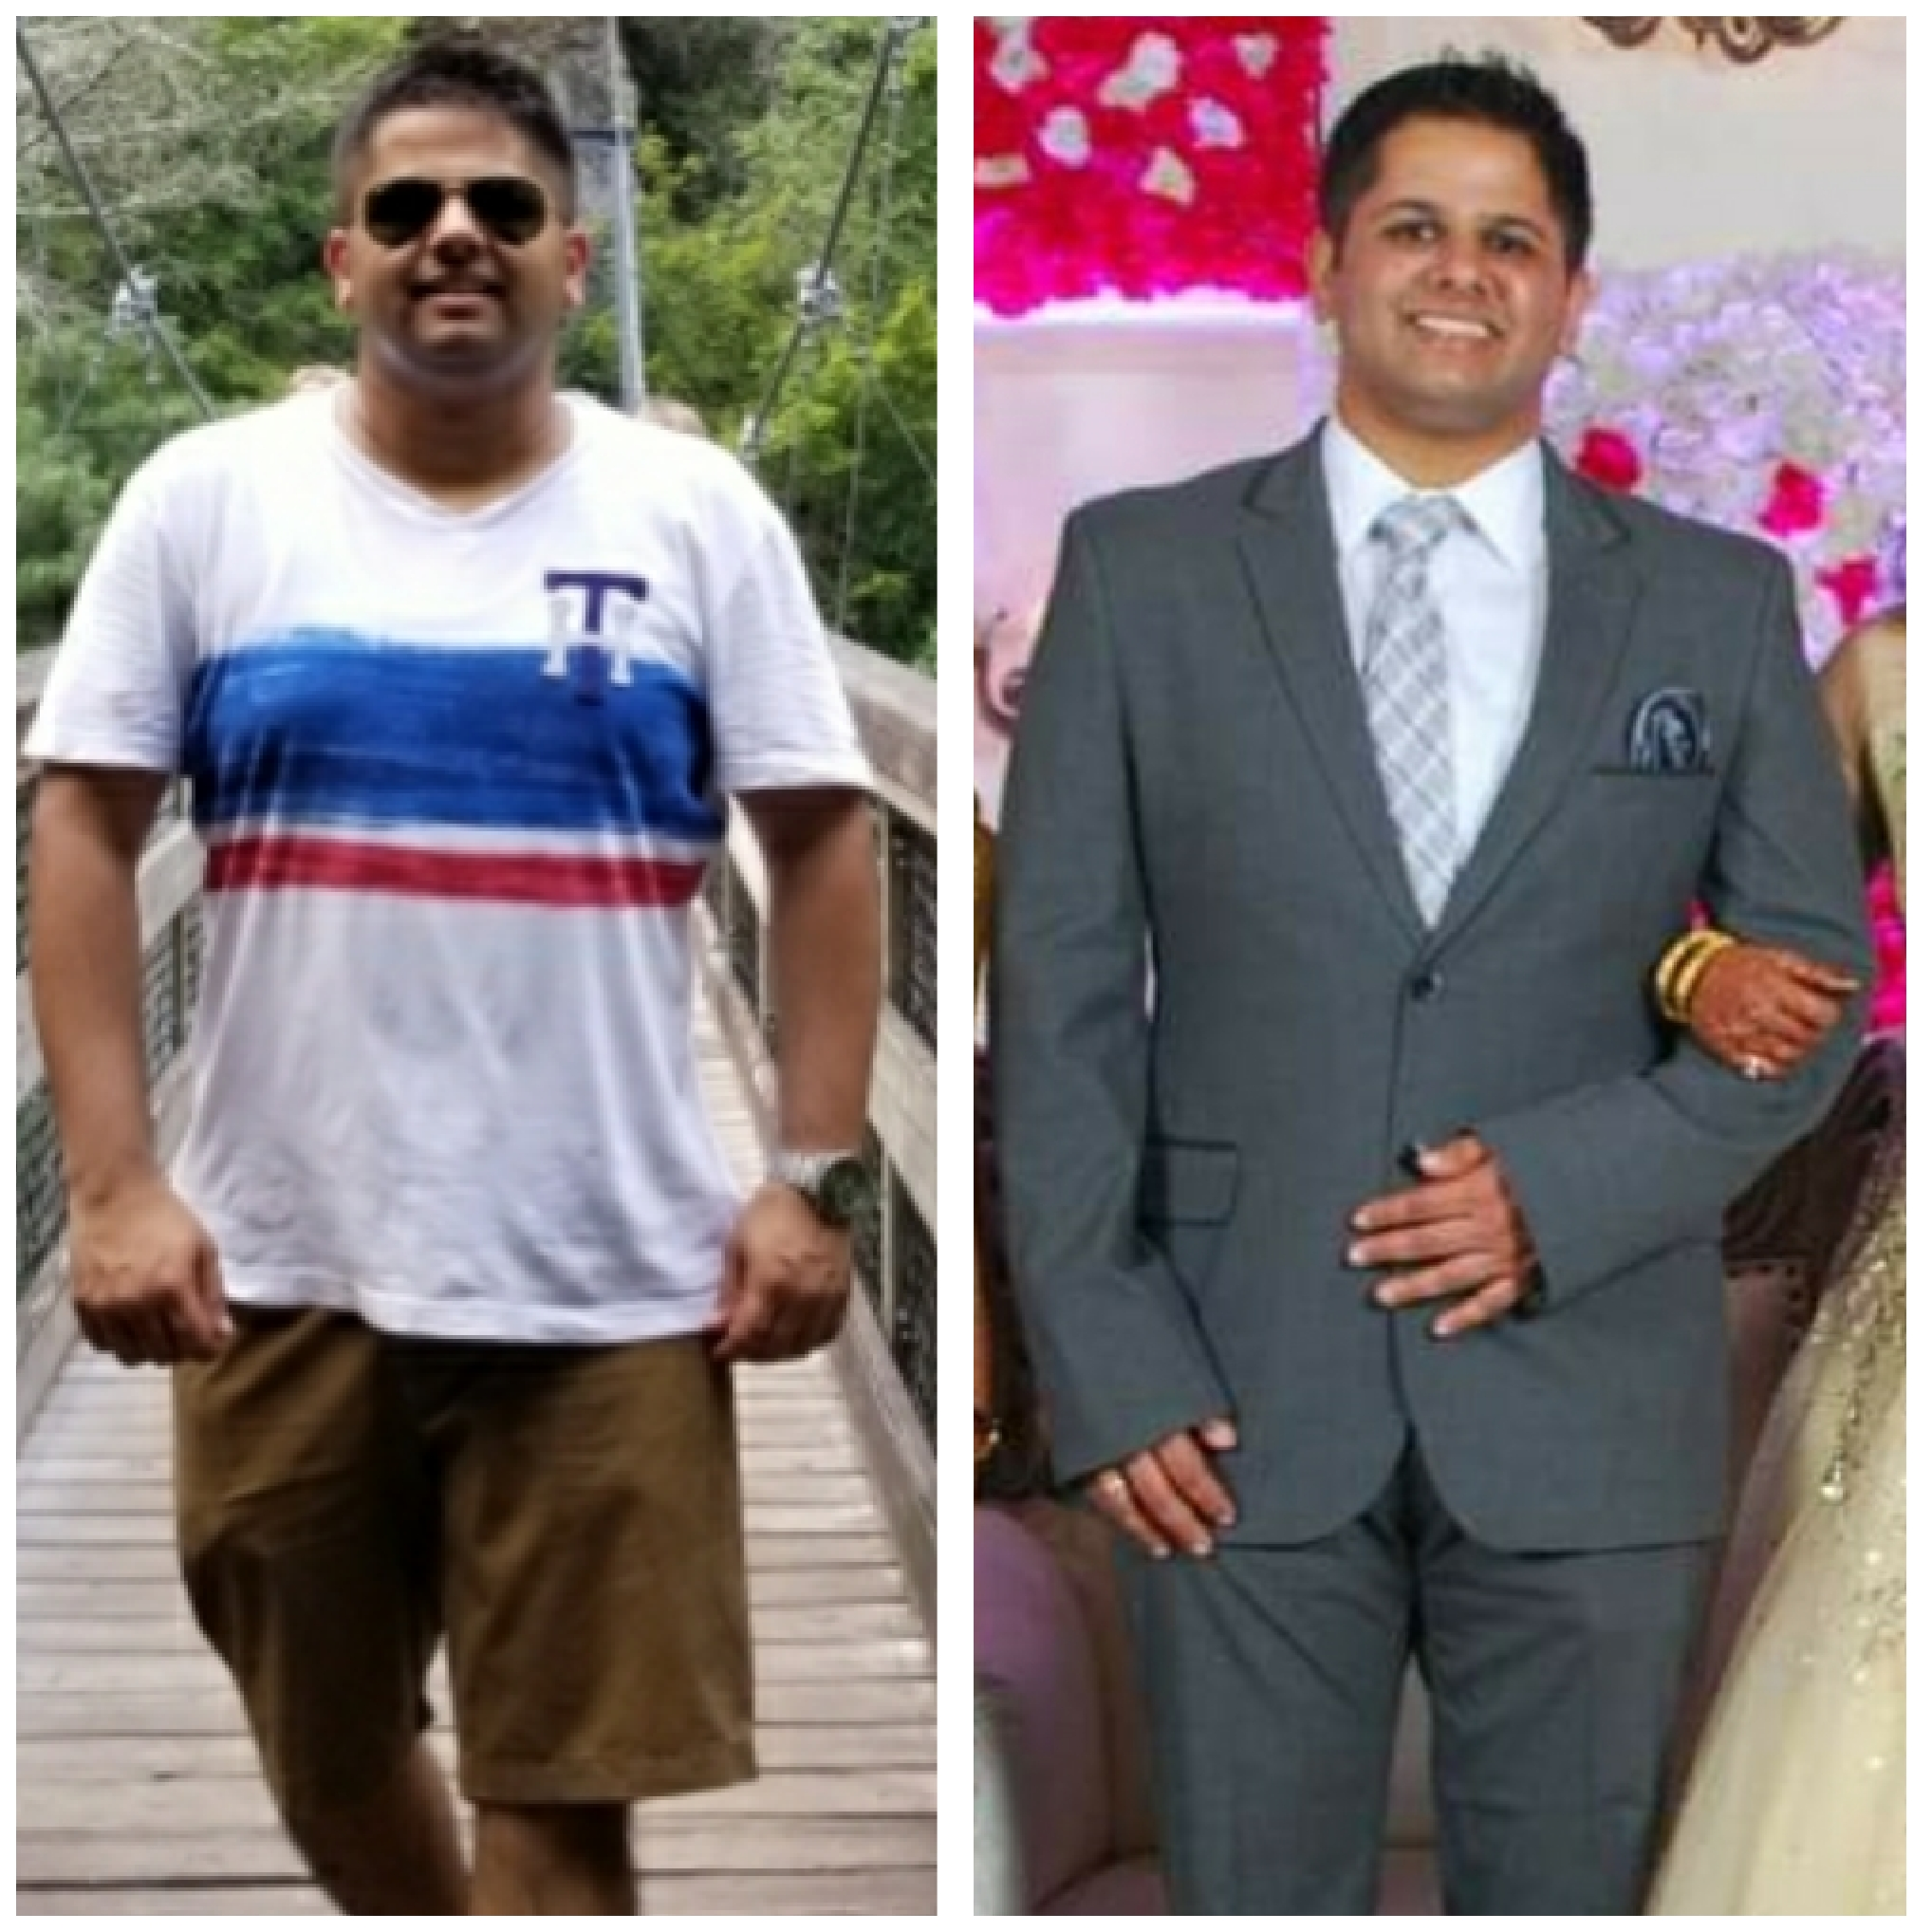 SWAPNIL LOST OVER 10 lbs.